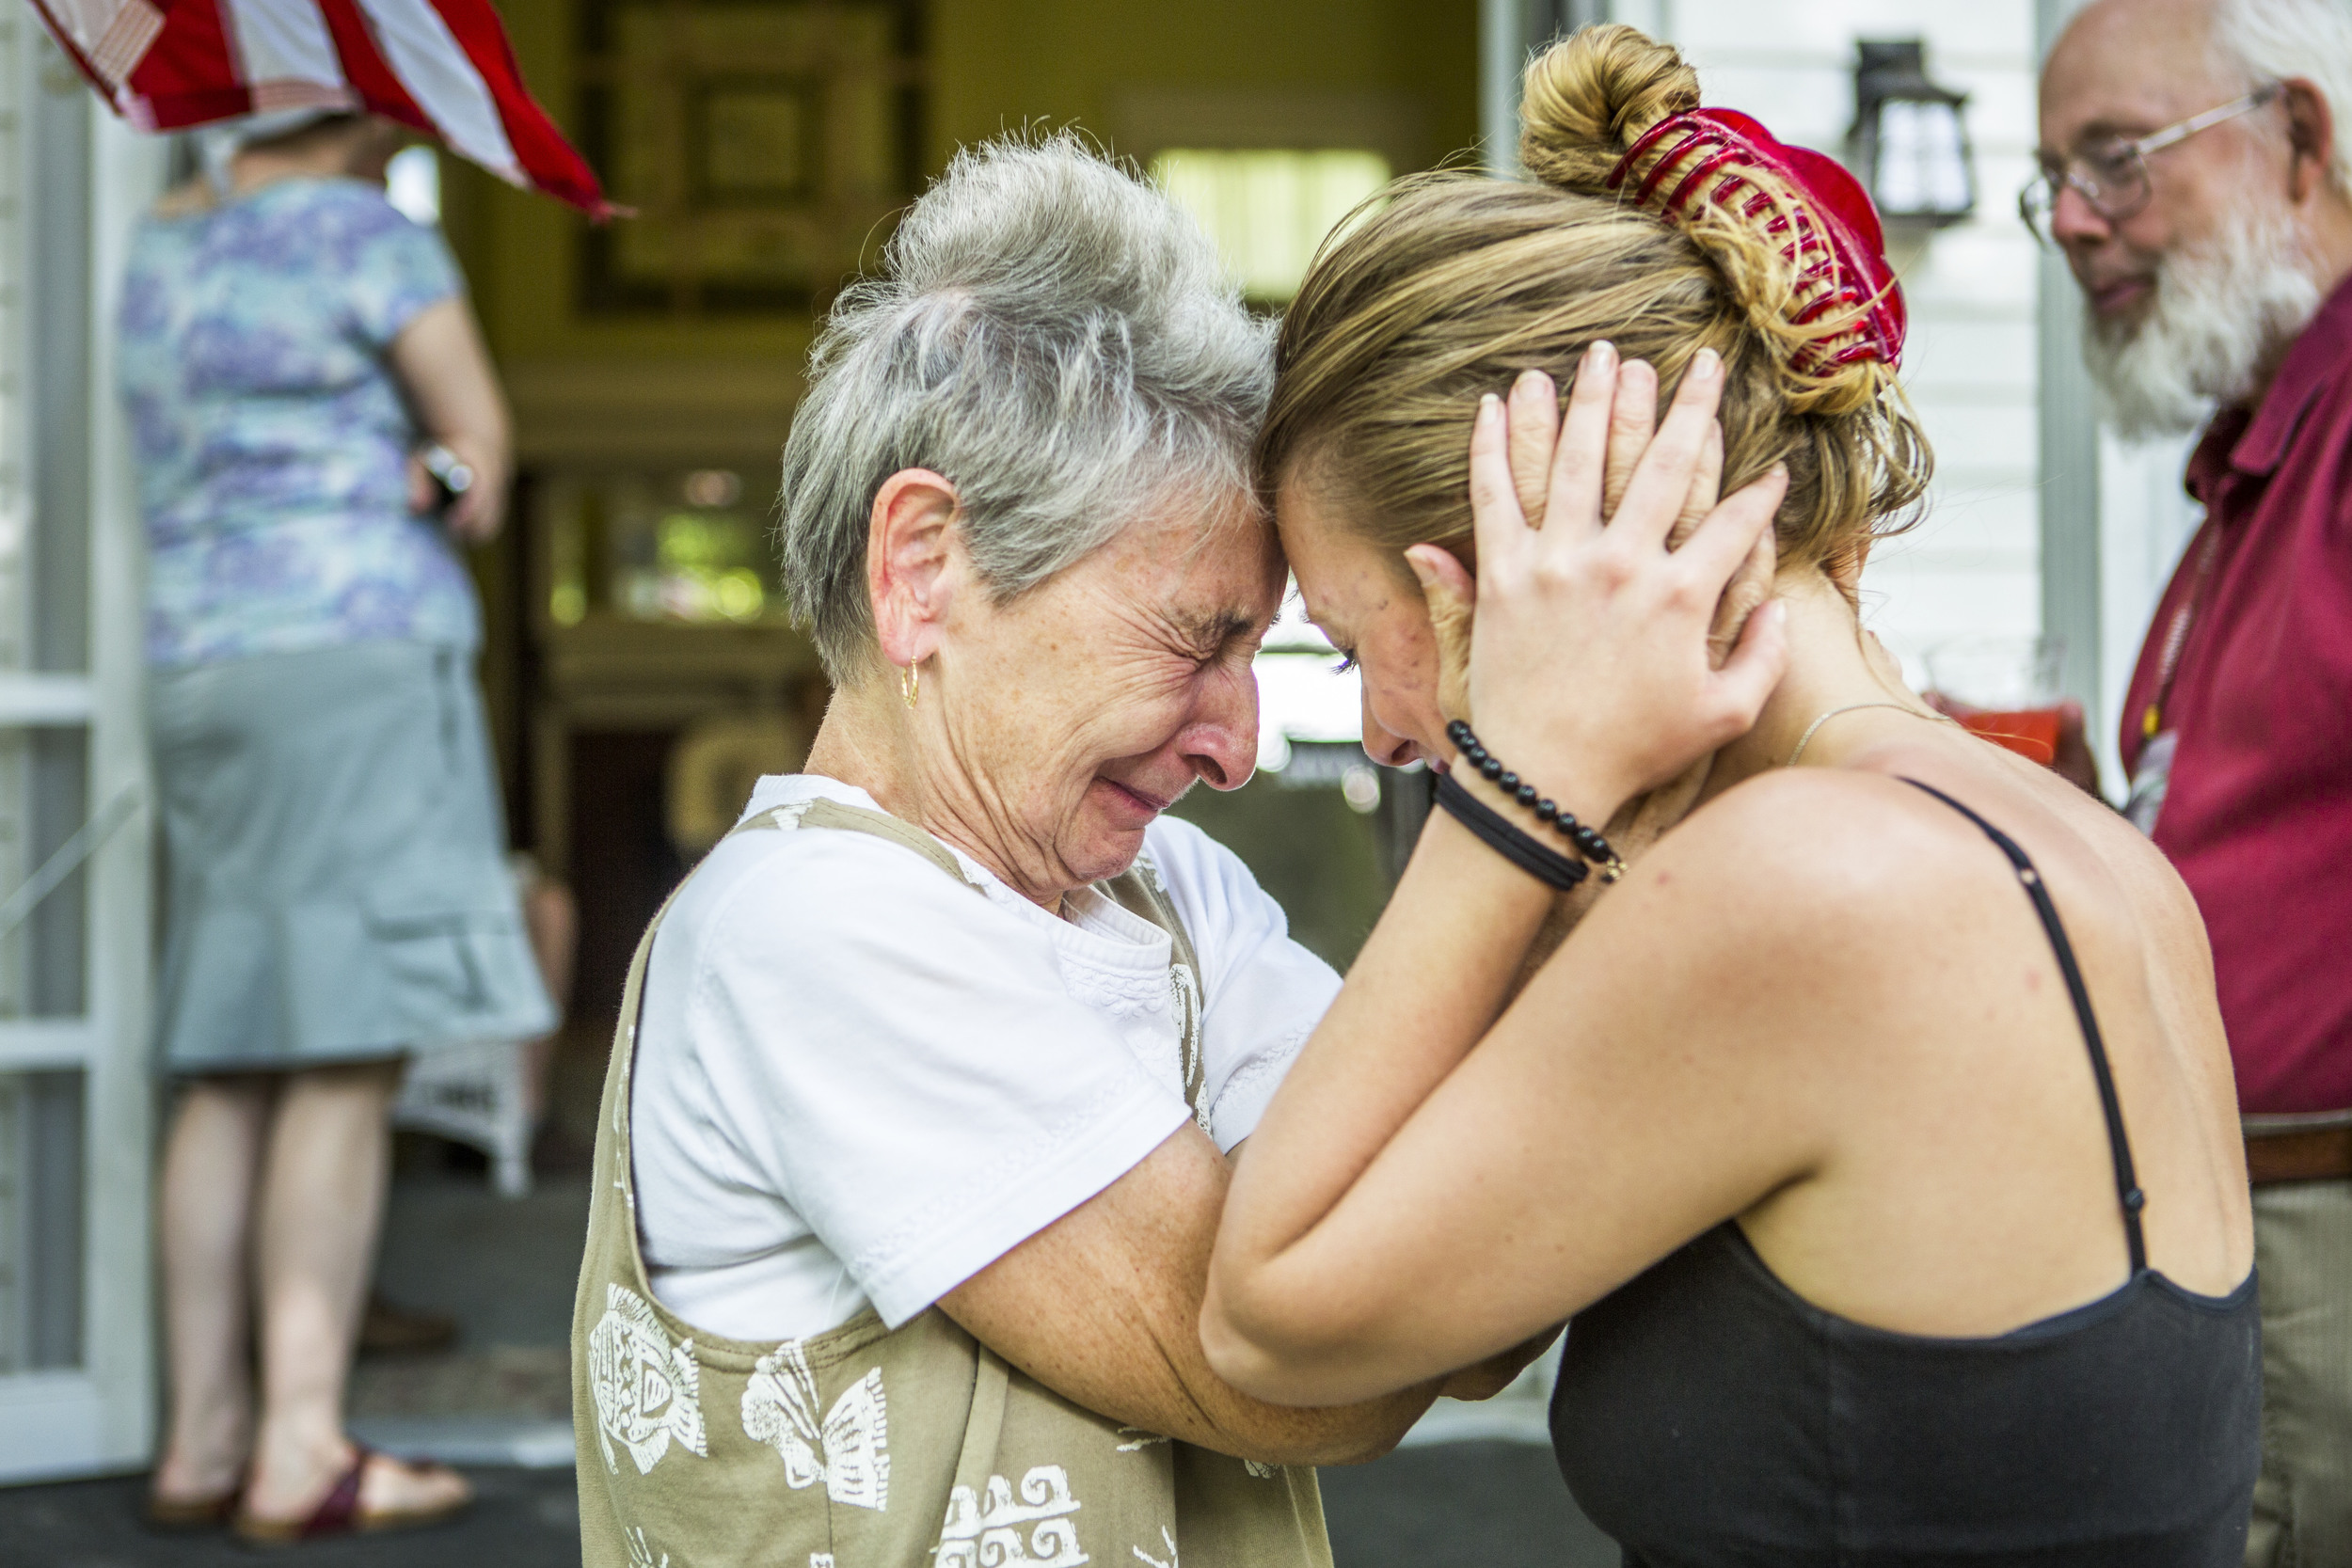 Pat tearfully says goodbye to Alex Paul on the porch of the Baptist House. Pat and Bud allowed Paul to stay for free throughout out the summer so she could be a member of the choir and covered the cost of her room out of their own pocket.